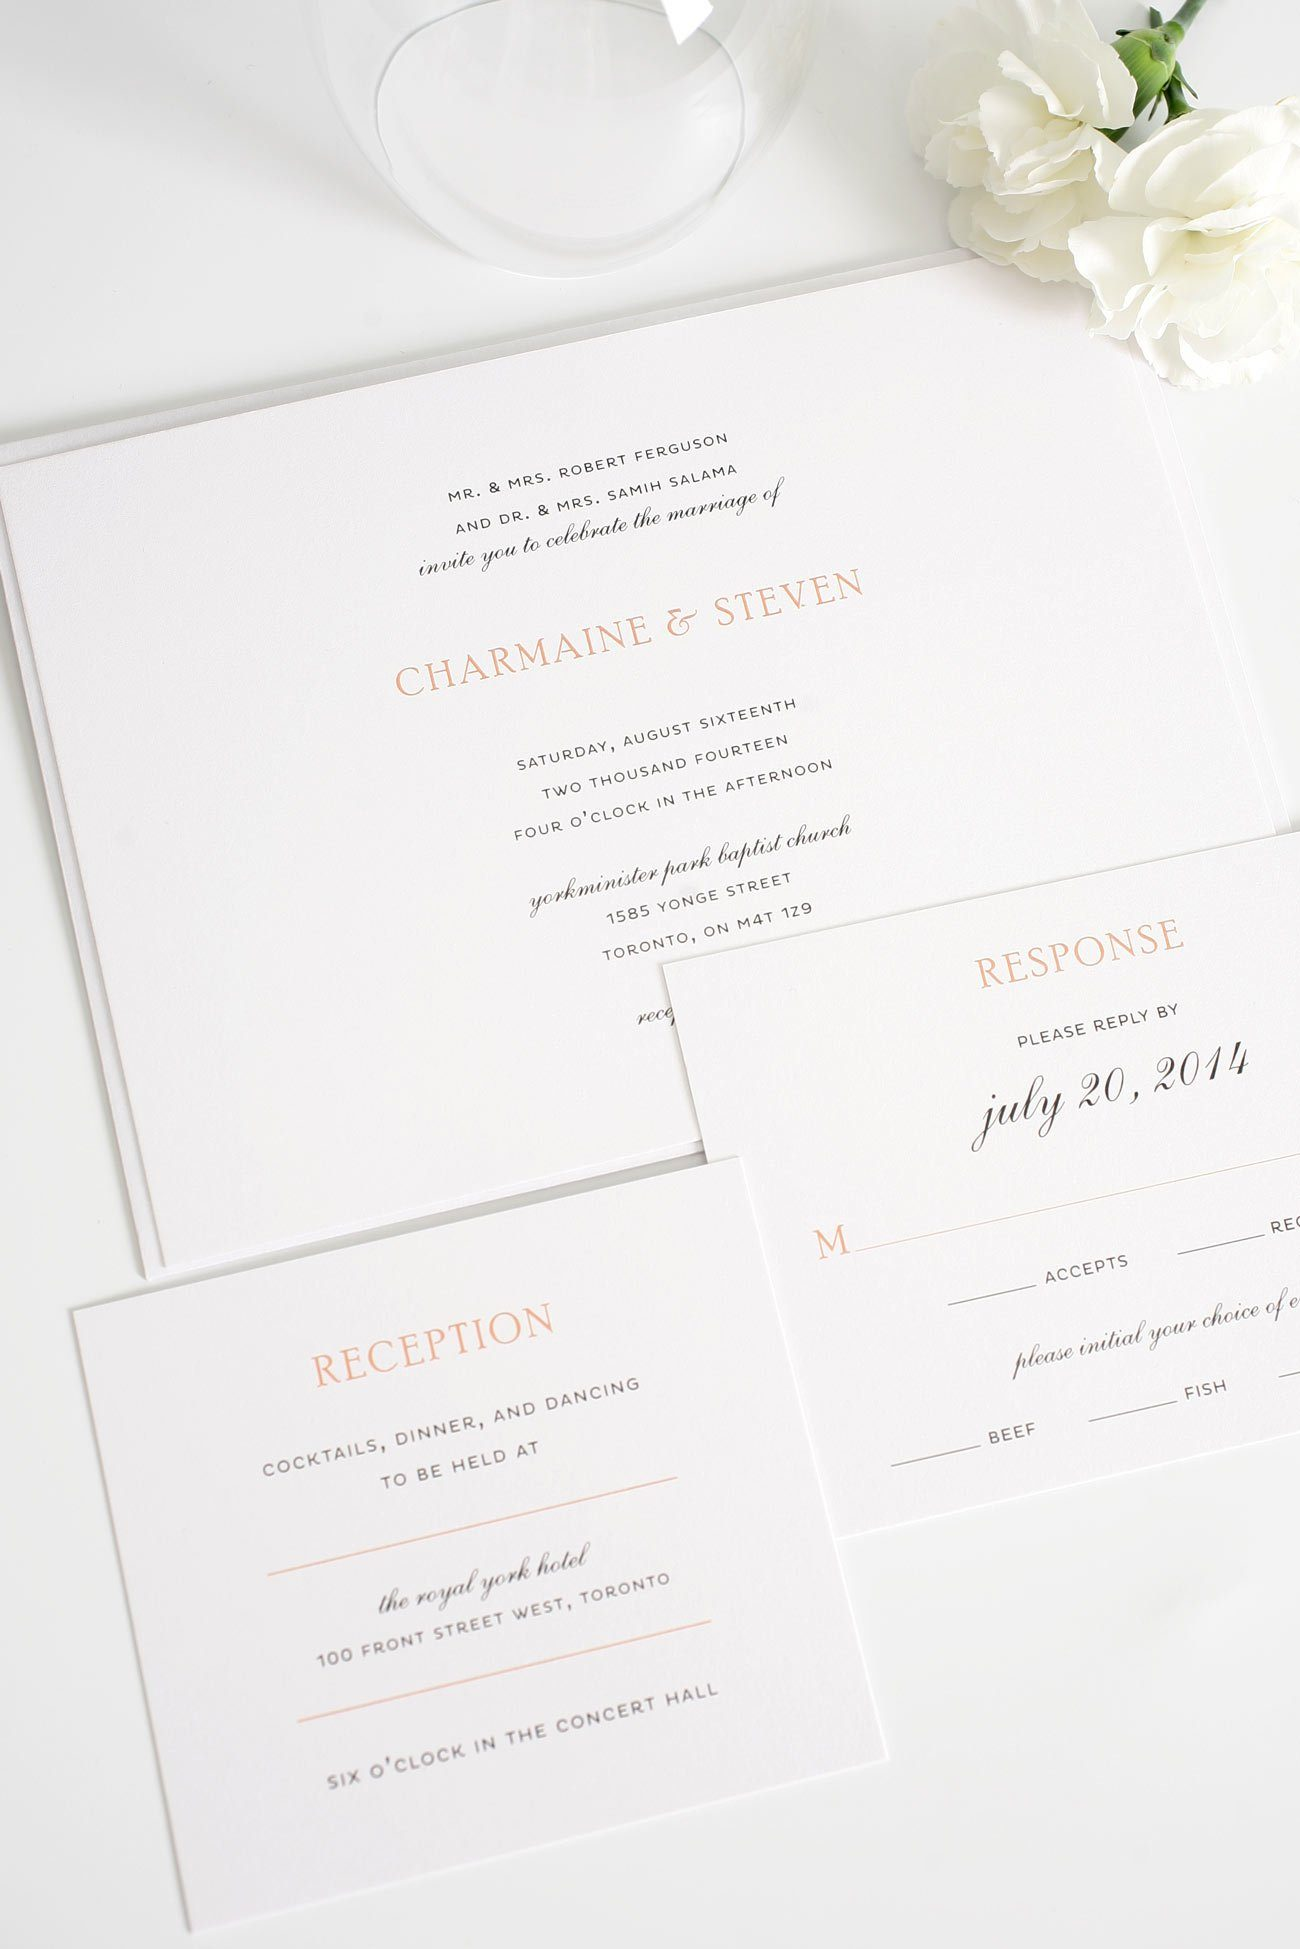 Elegant wedding invitations with peach accents